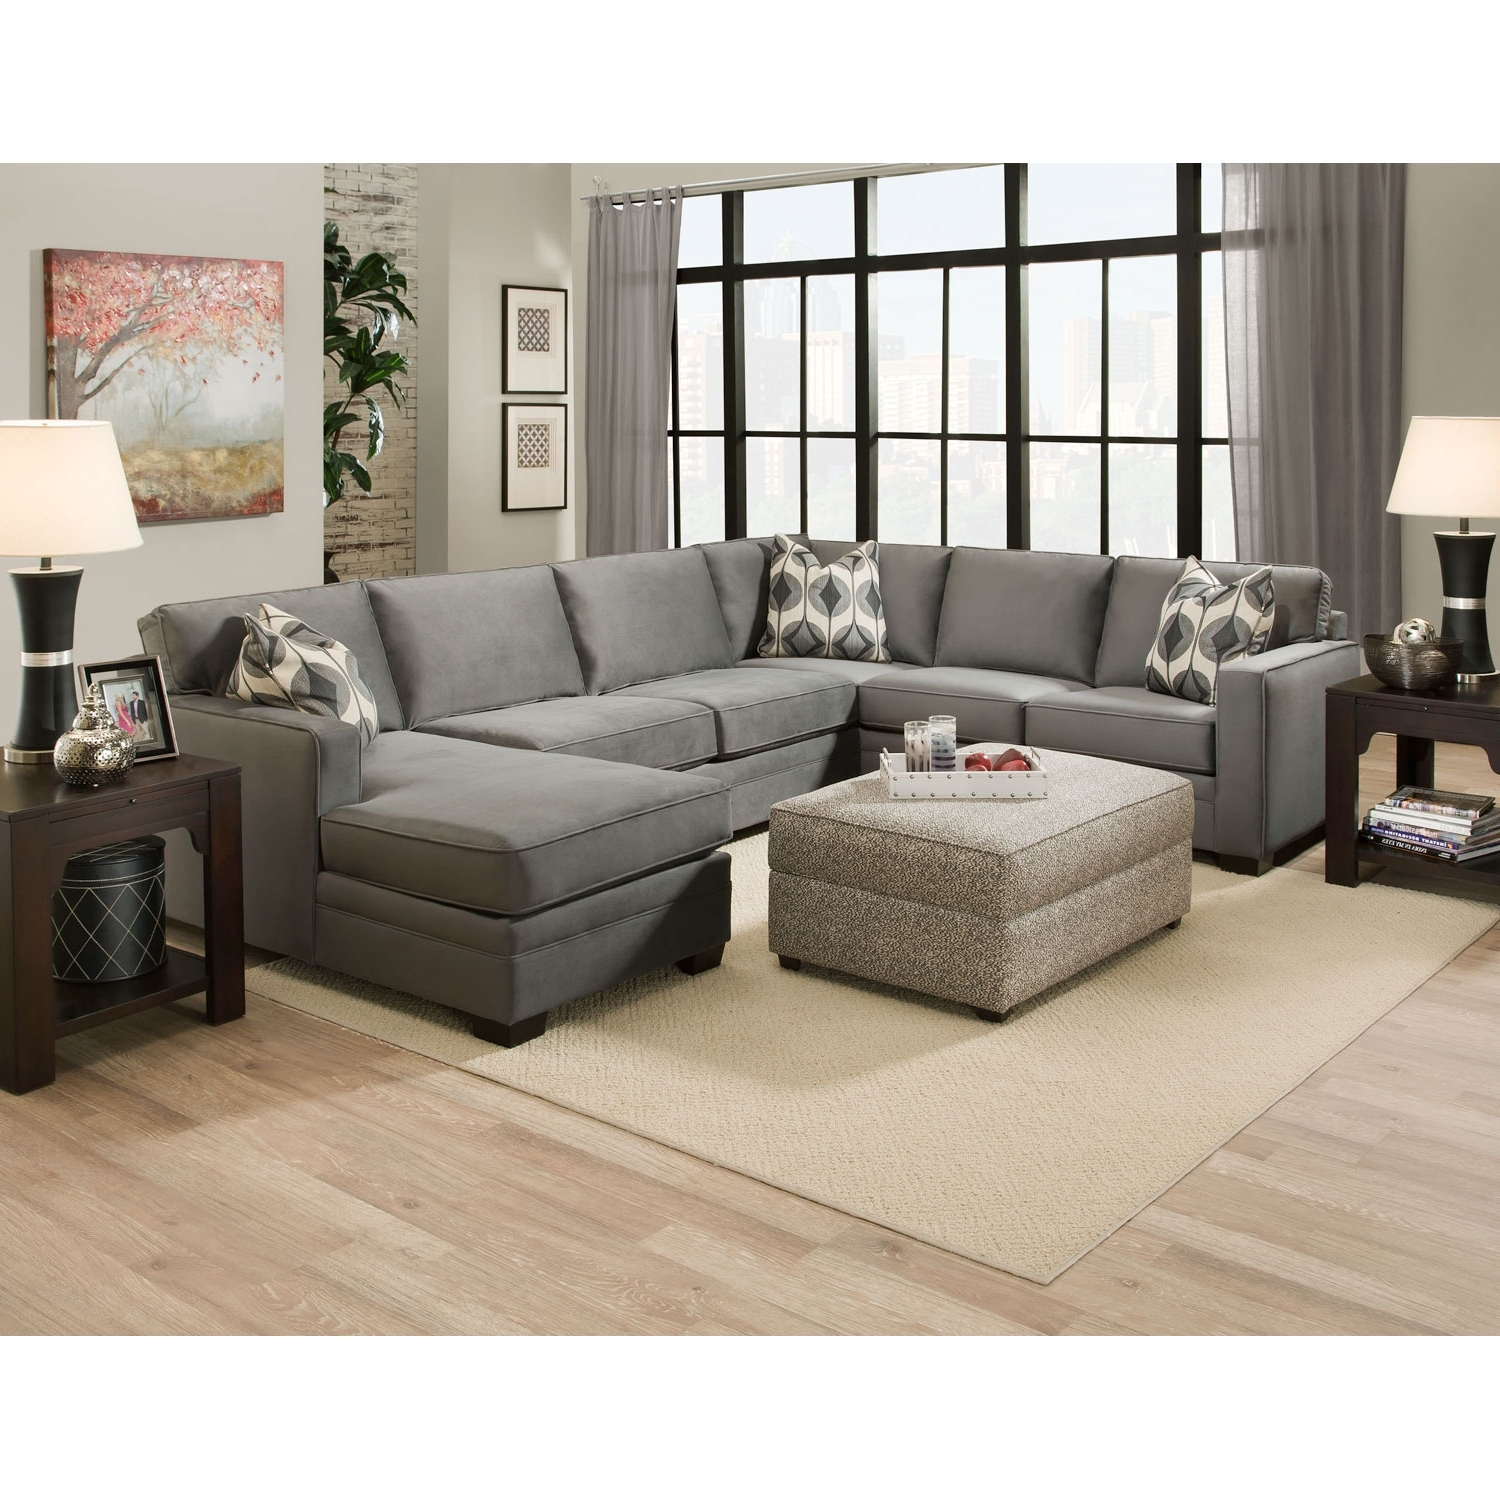 Gray Extra Large U Shaped Sectional Sofa With Chaise And Accent In Popular Memphis Tn Sectional Sofas (View 5 of 20)